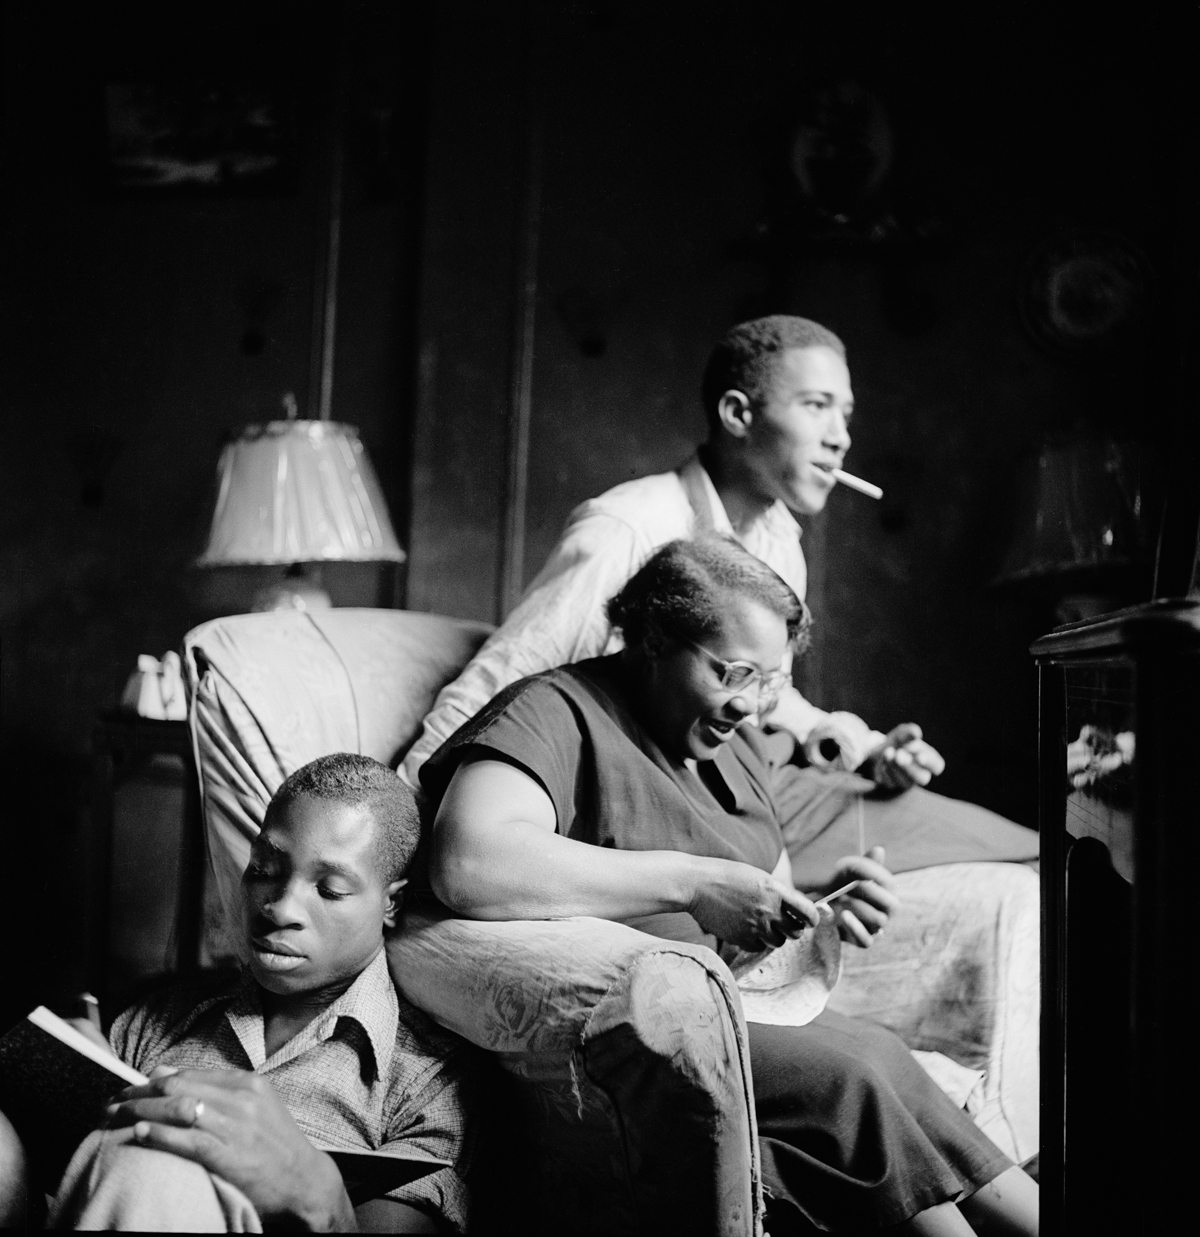 Gordon Parks, 'Red Jackson with His Mother and Brother, Harlem, New York,' 1948.